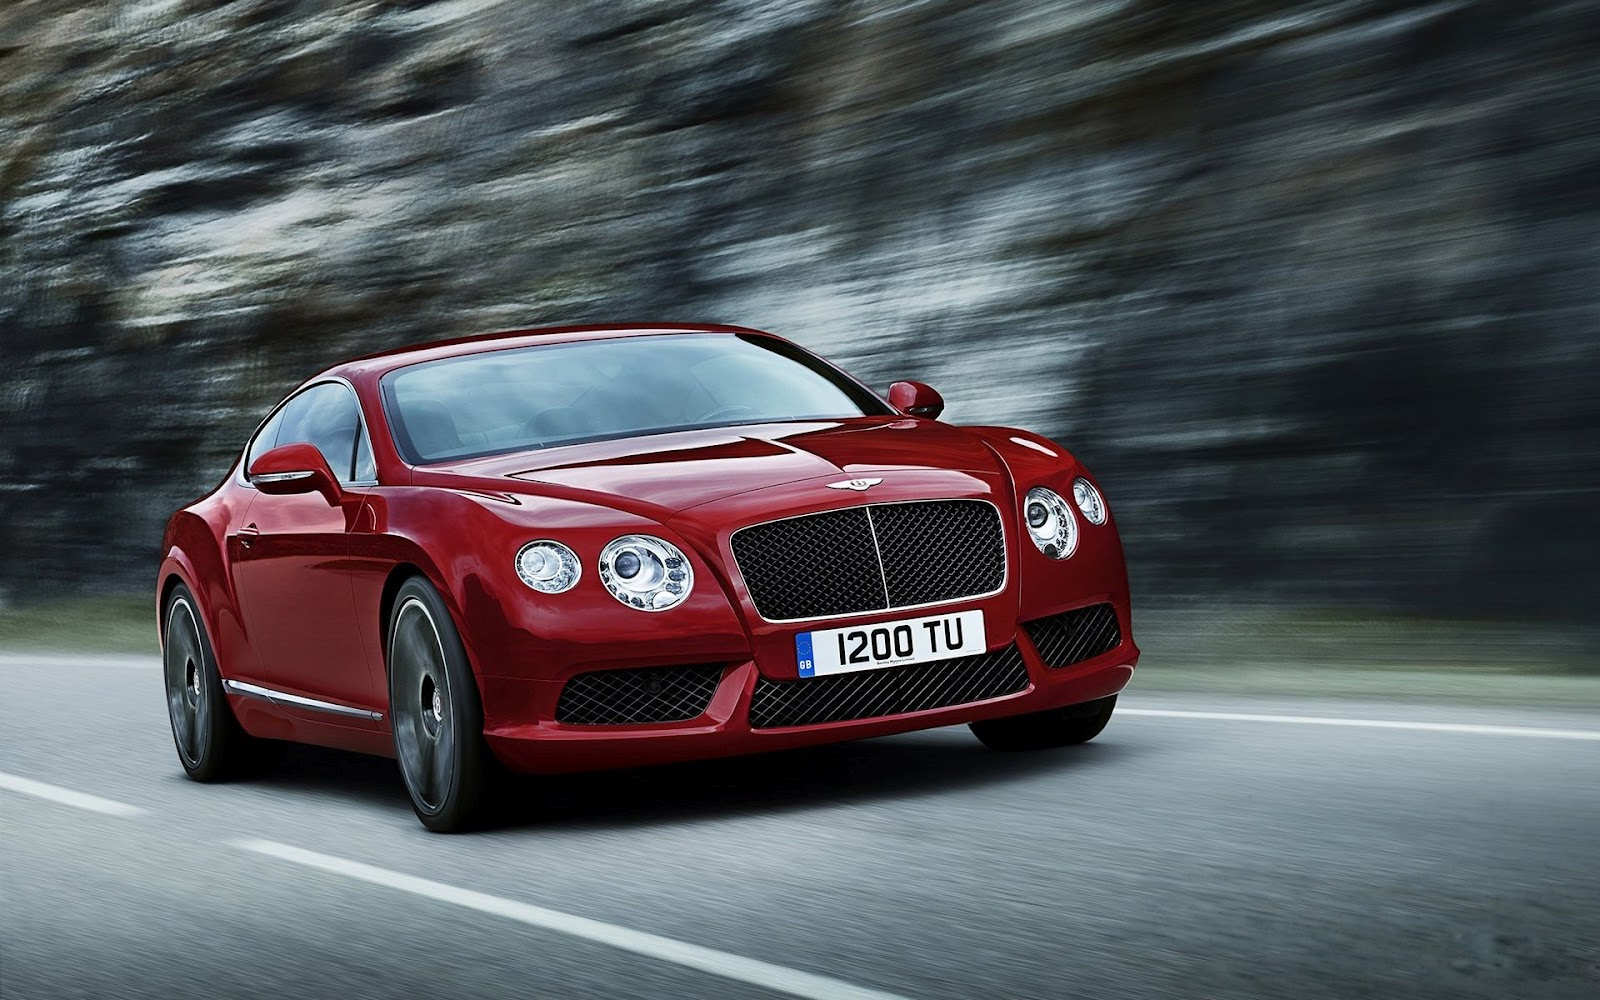 2013 Bentley Continental GT V8 Cost